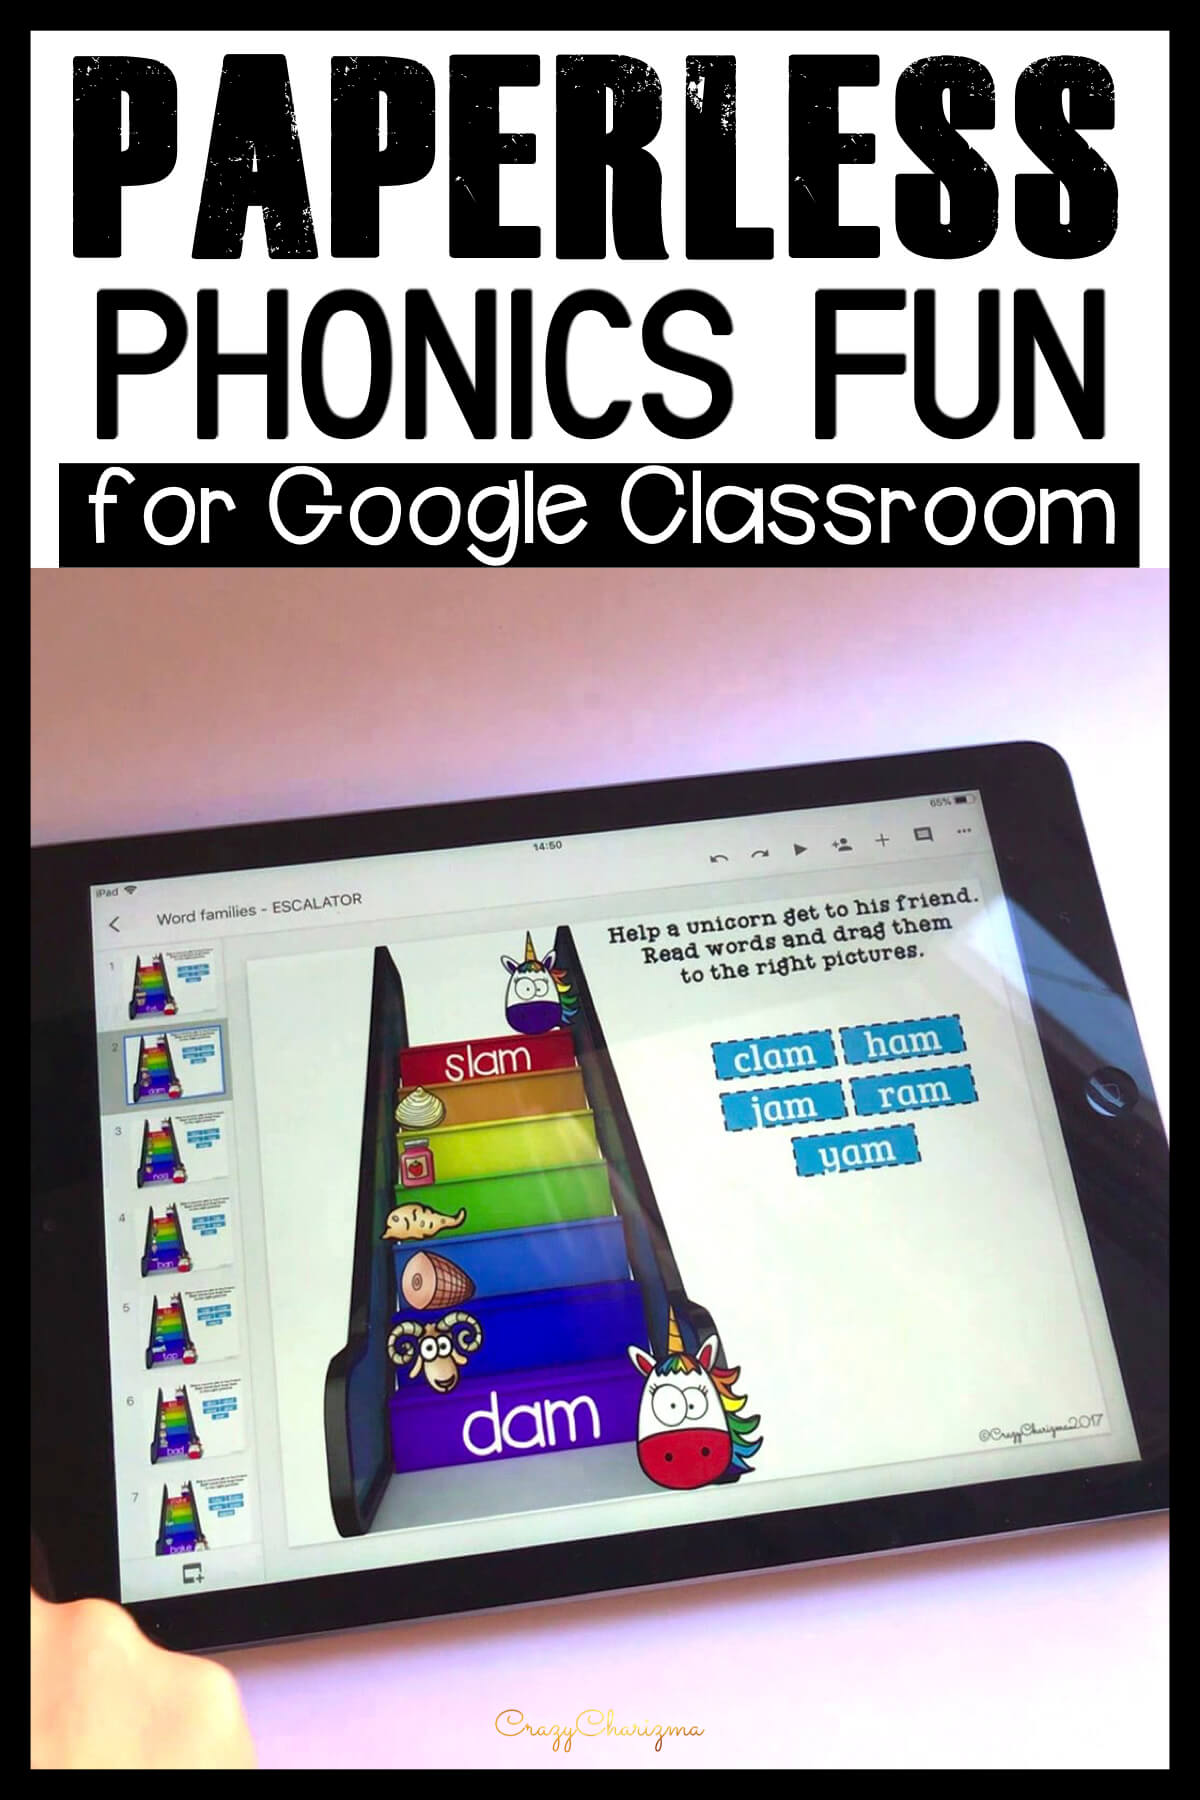 Google Classroom Activities for Kindergarten | Phonics Games: Need hands-on activities to practice CVC words? Grab these activities for Google Classroom. They are perfect for literacy centers, whole group, small group, homework, guided reading groups and 1:1 work. Get kids engaged with phonics.